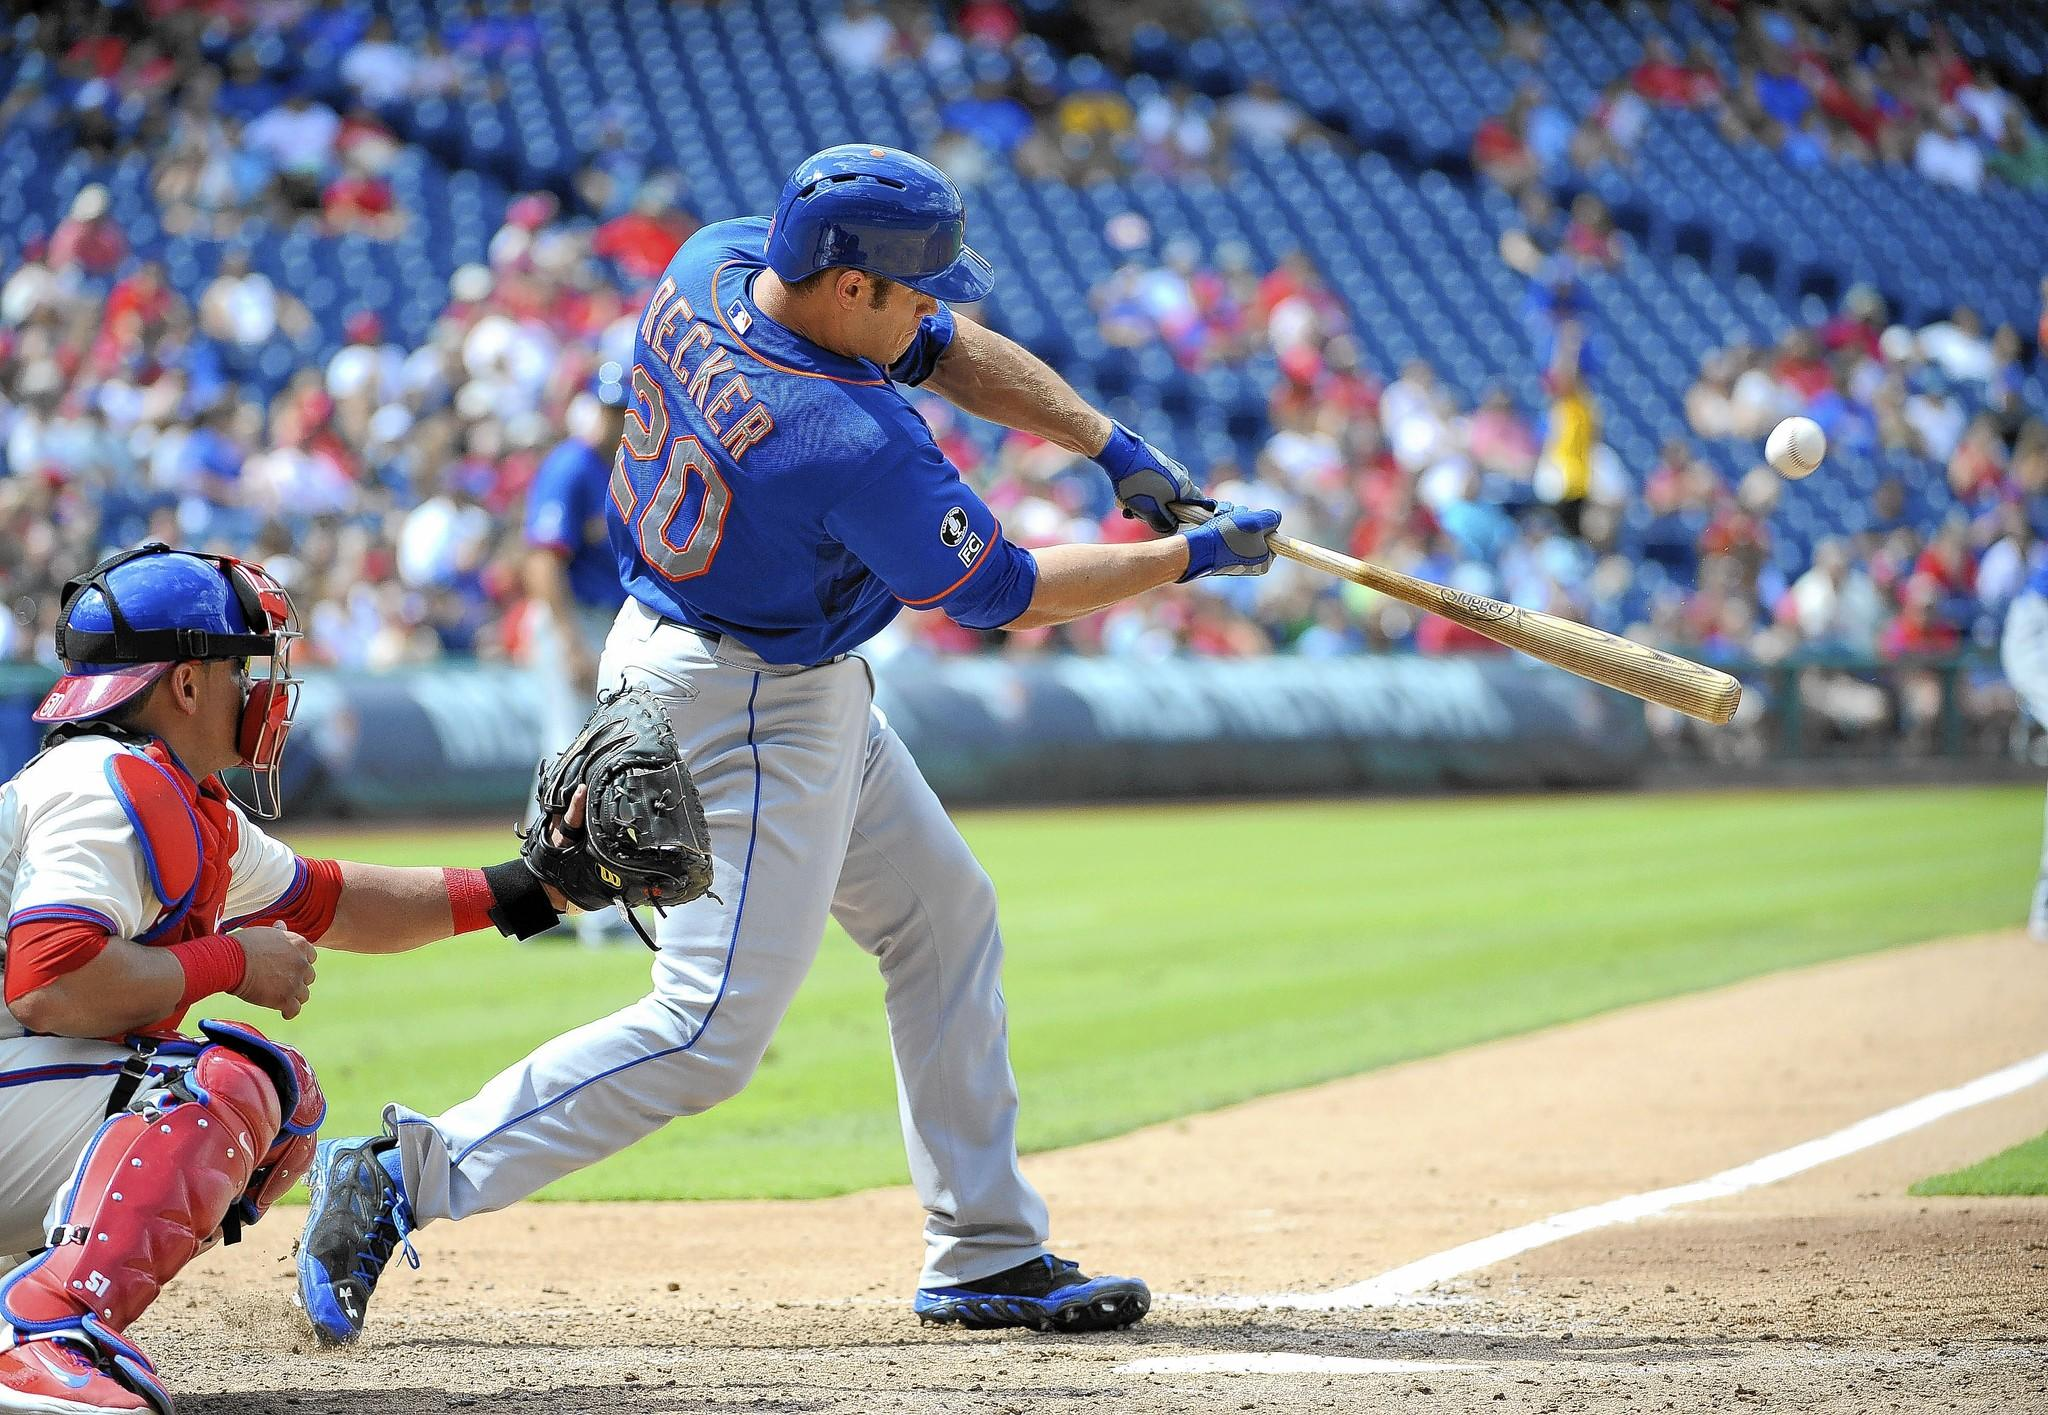 Catasauqua High graduate Anthony Recker hit a three-run home run Monday, helping the New York Mets to a 5-3 win over the Phillies.